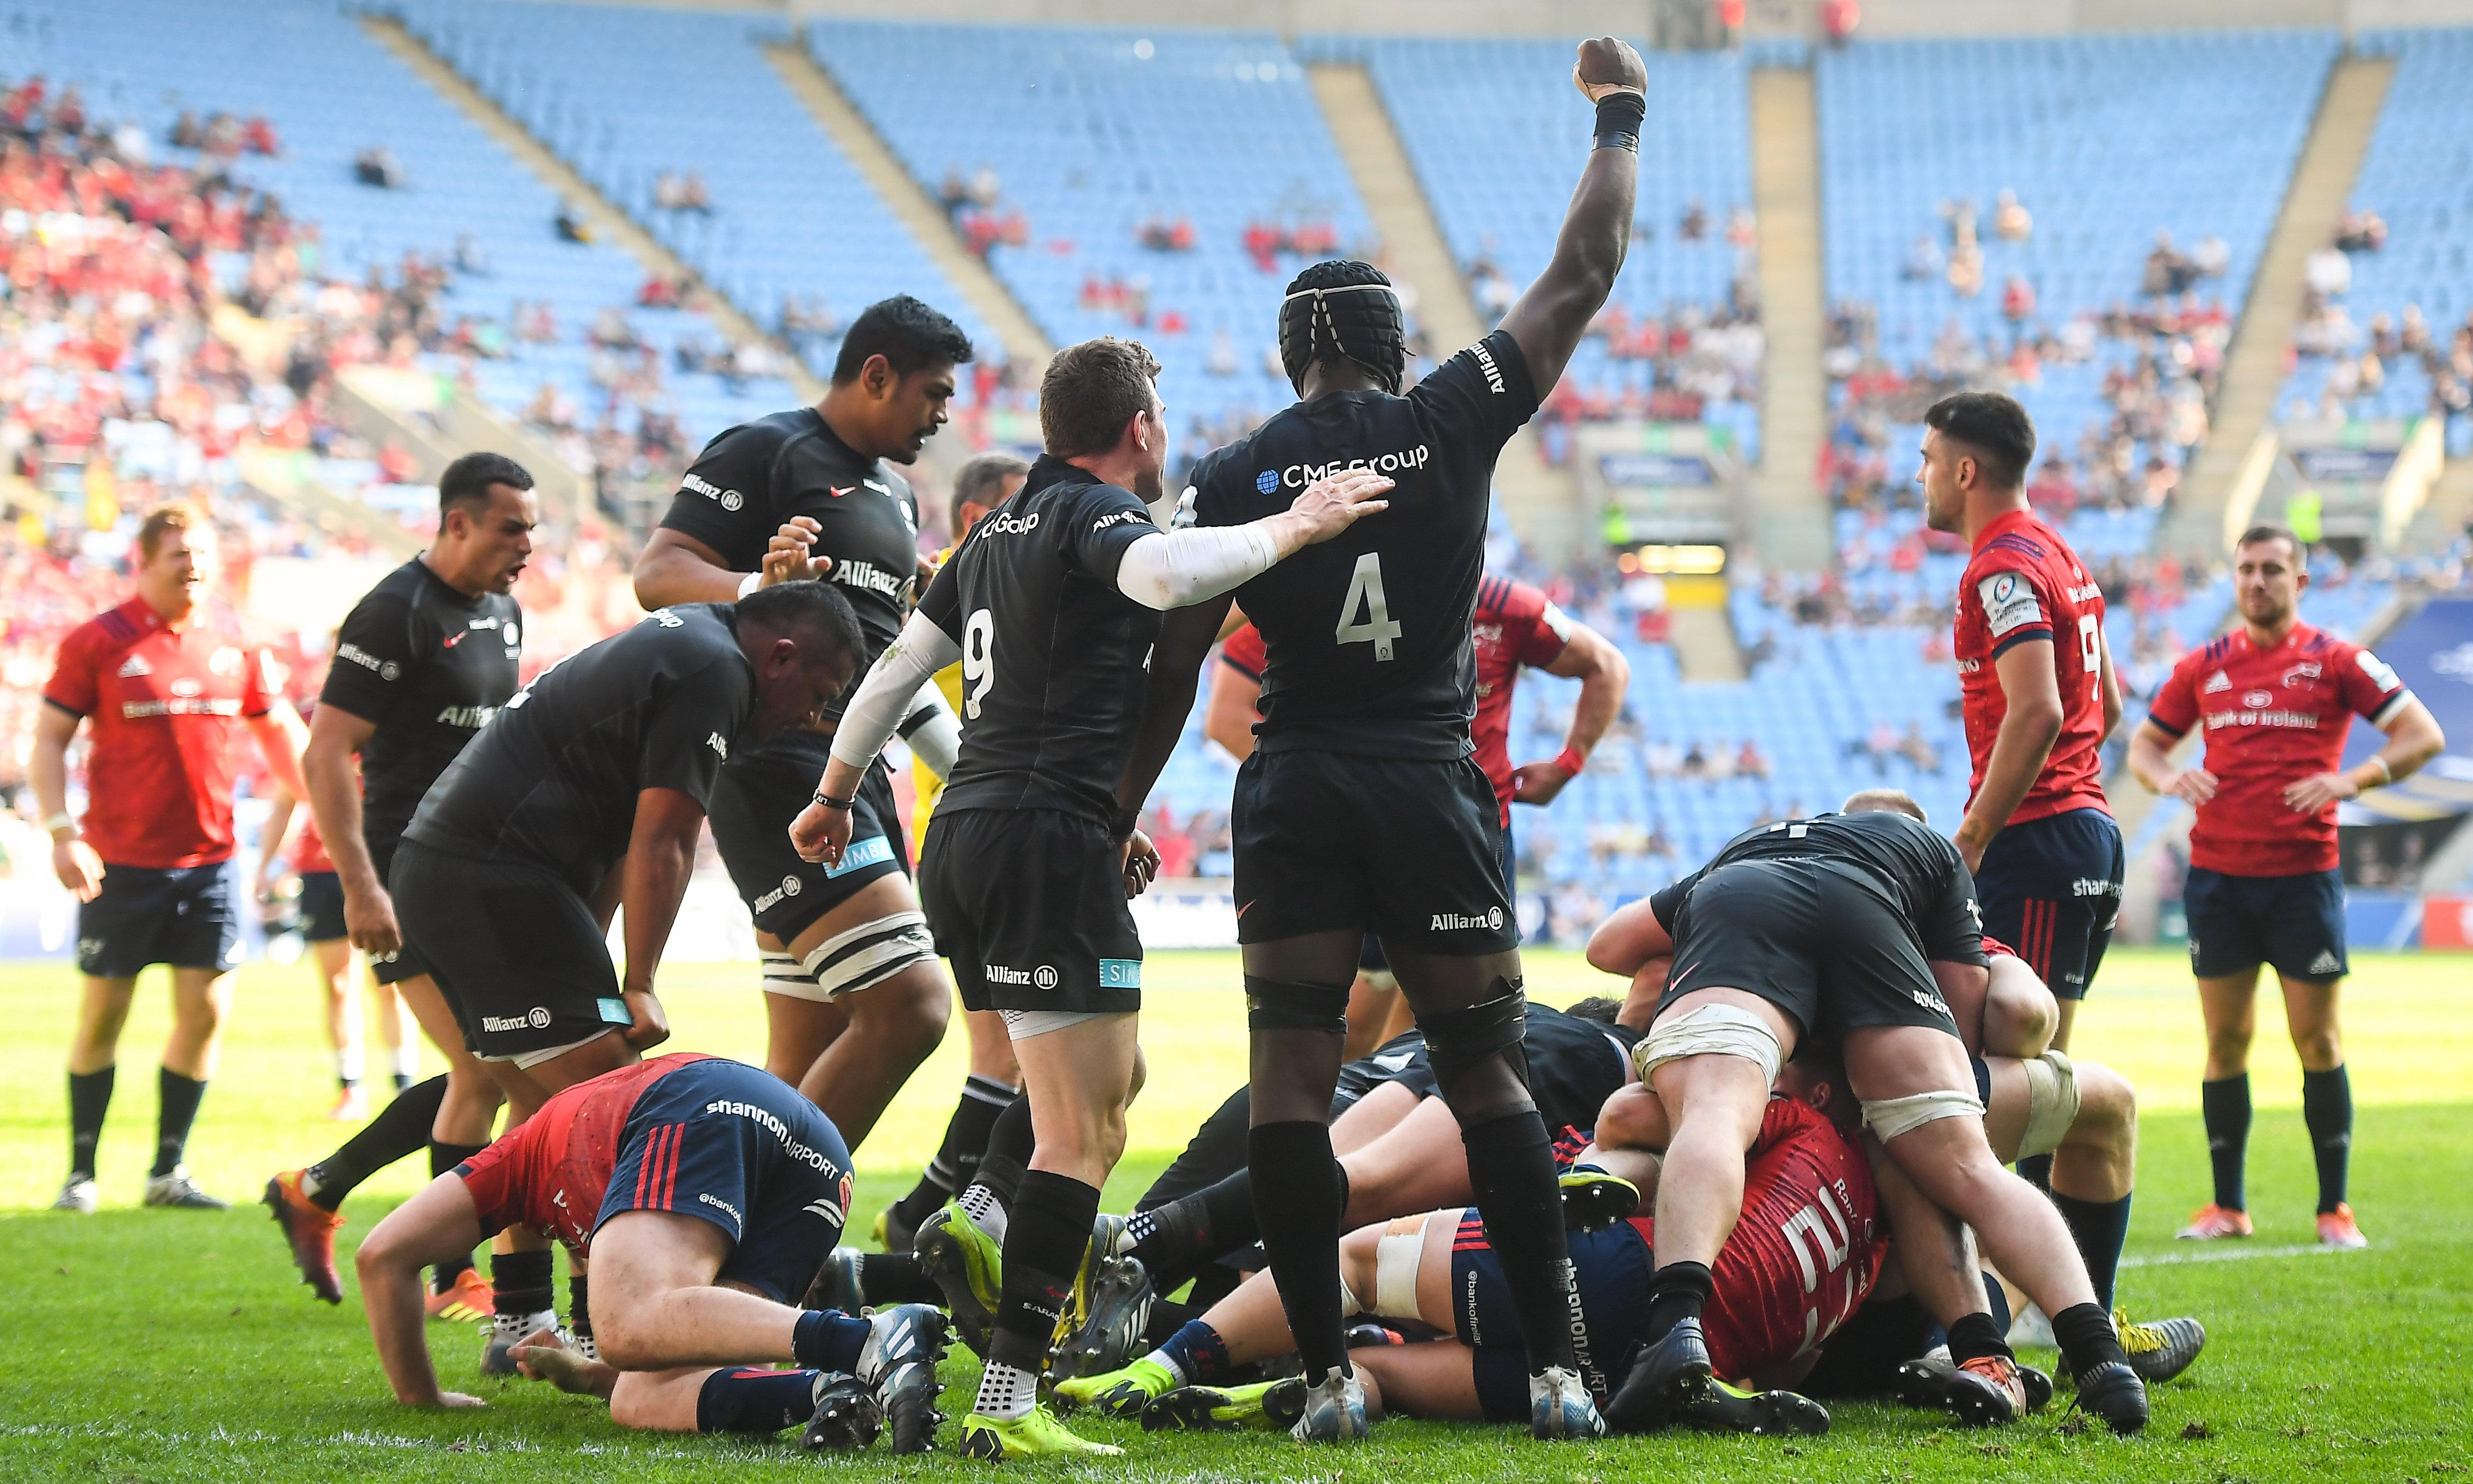 Billy Vunipola helps Saracens power past Munster into Champions Cup final